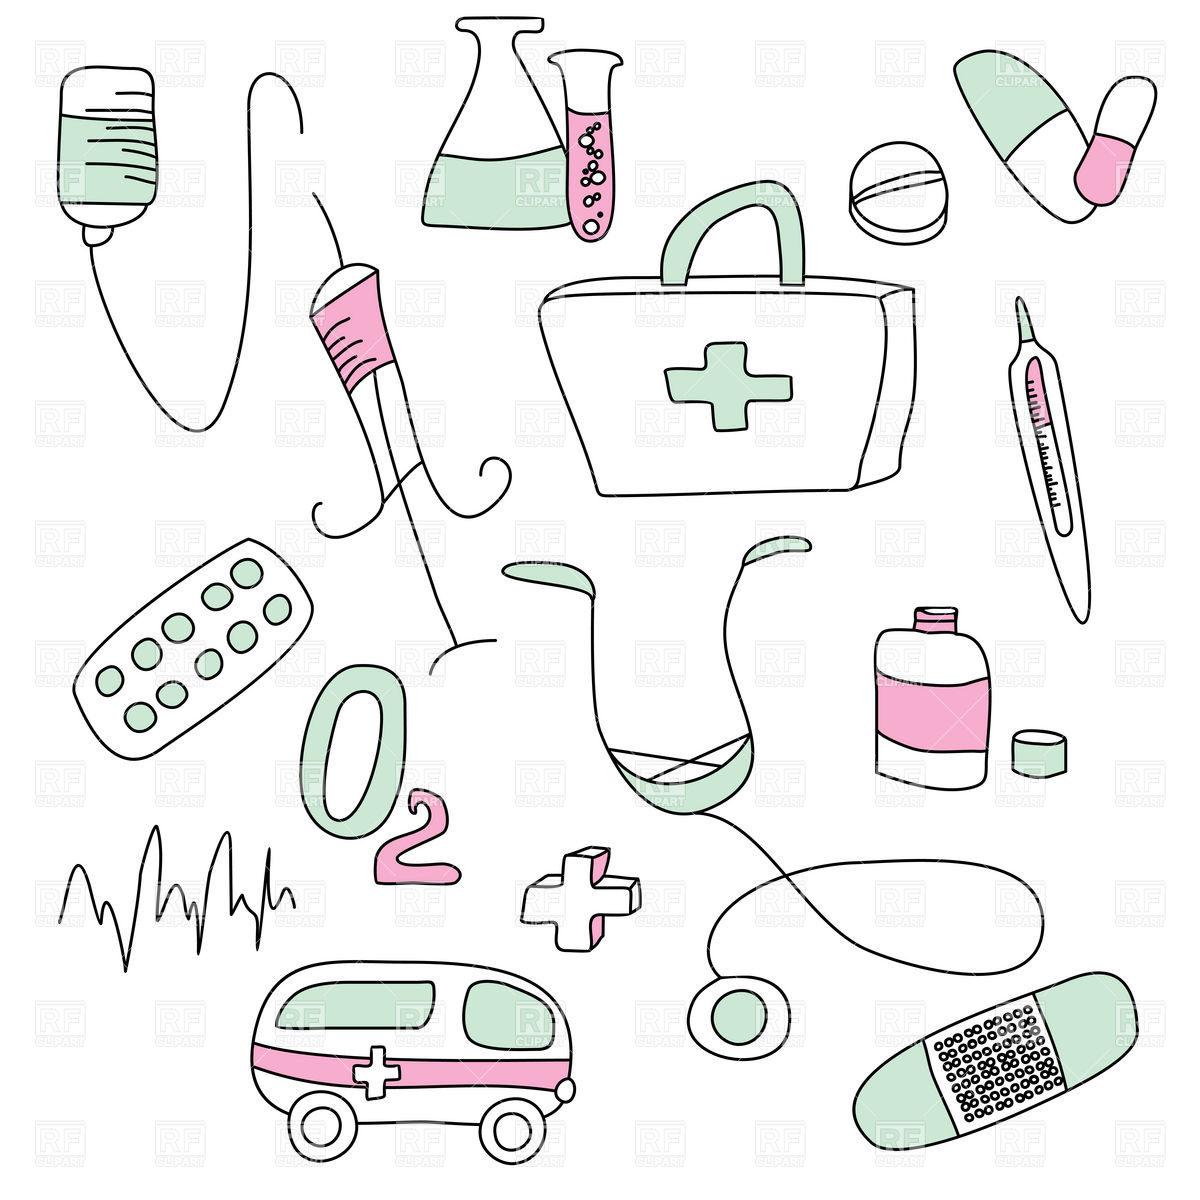 Free Medical Border Cliparts, Download Free Clip Art, Free.